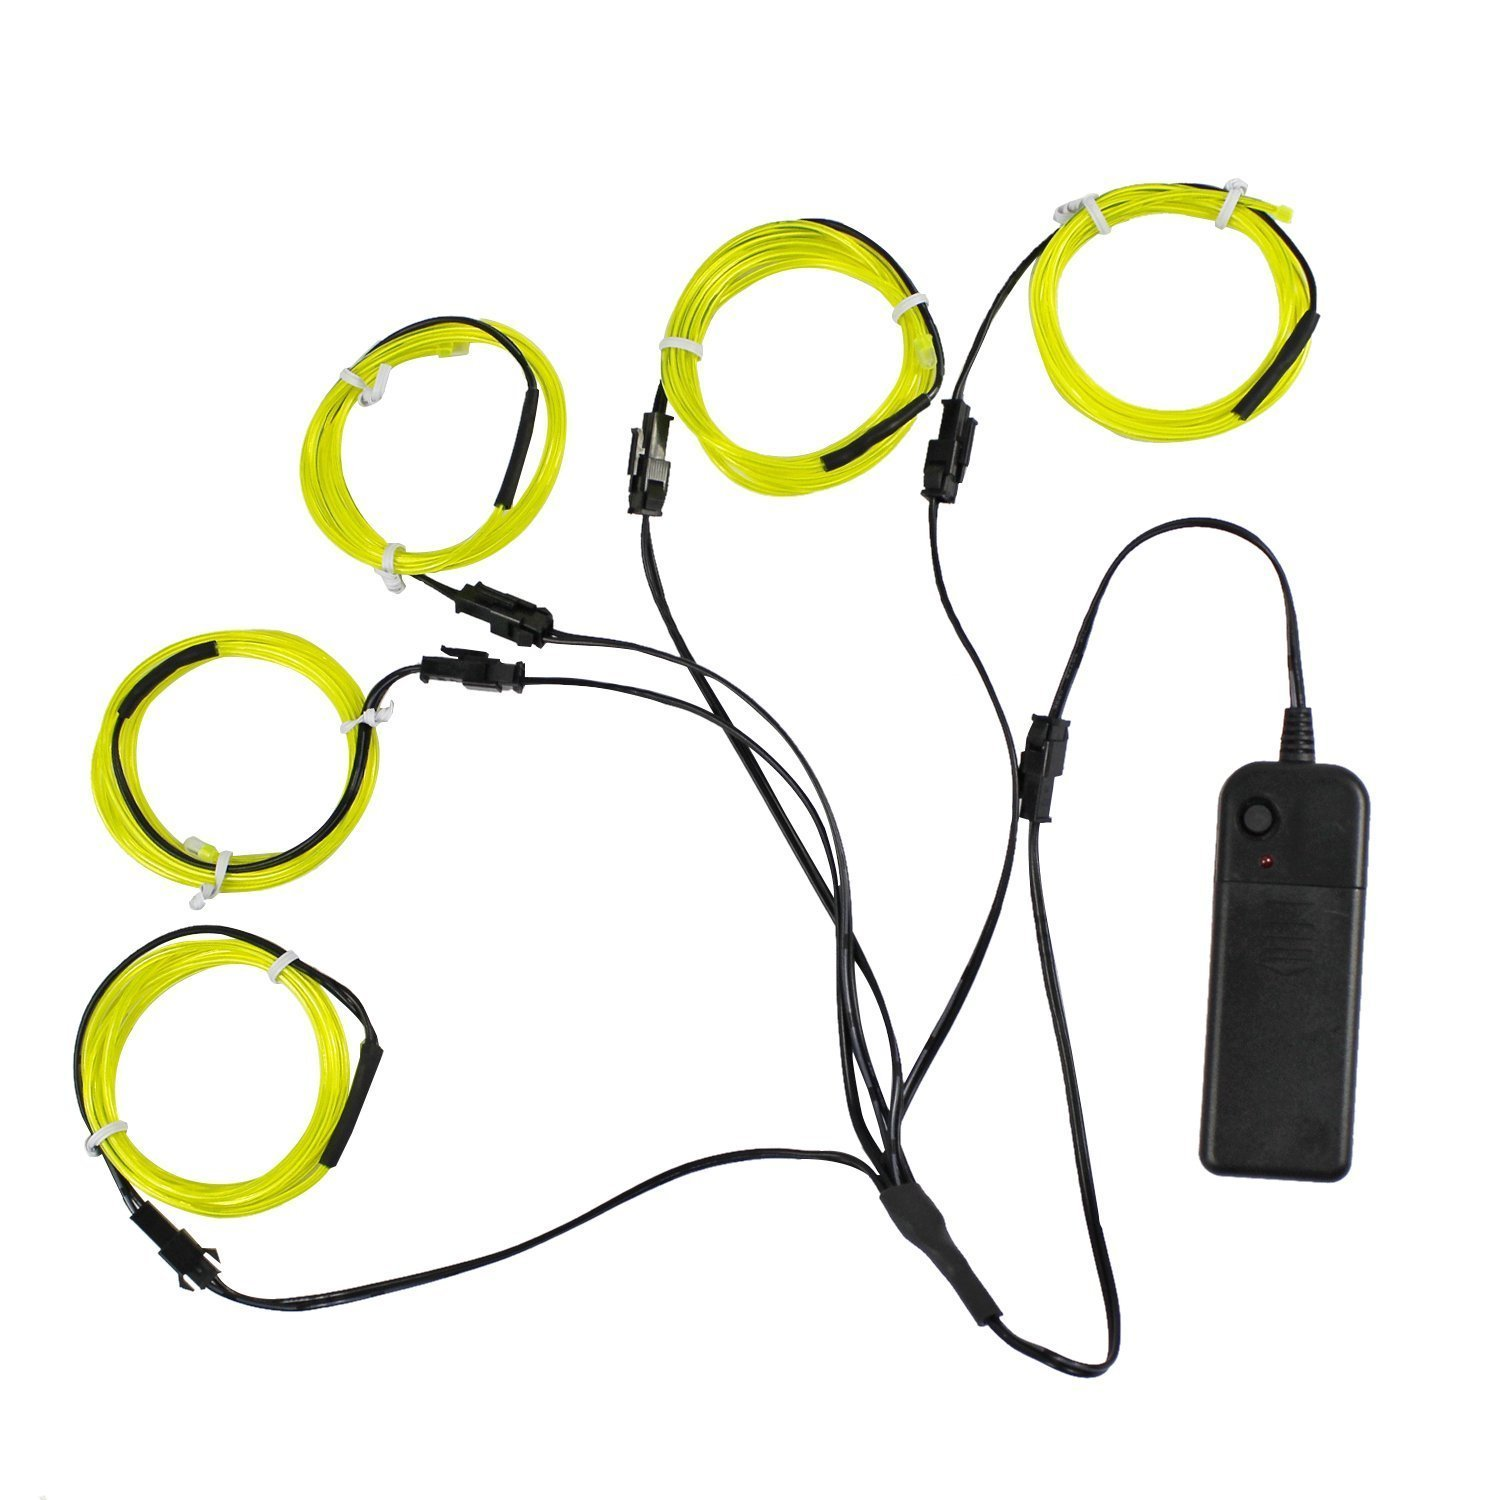 Buy 5m EL Wire with Battery Case Christmas Light Flexible Neon Rope ...